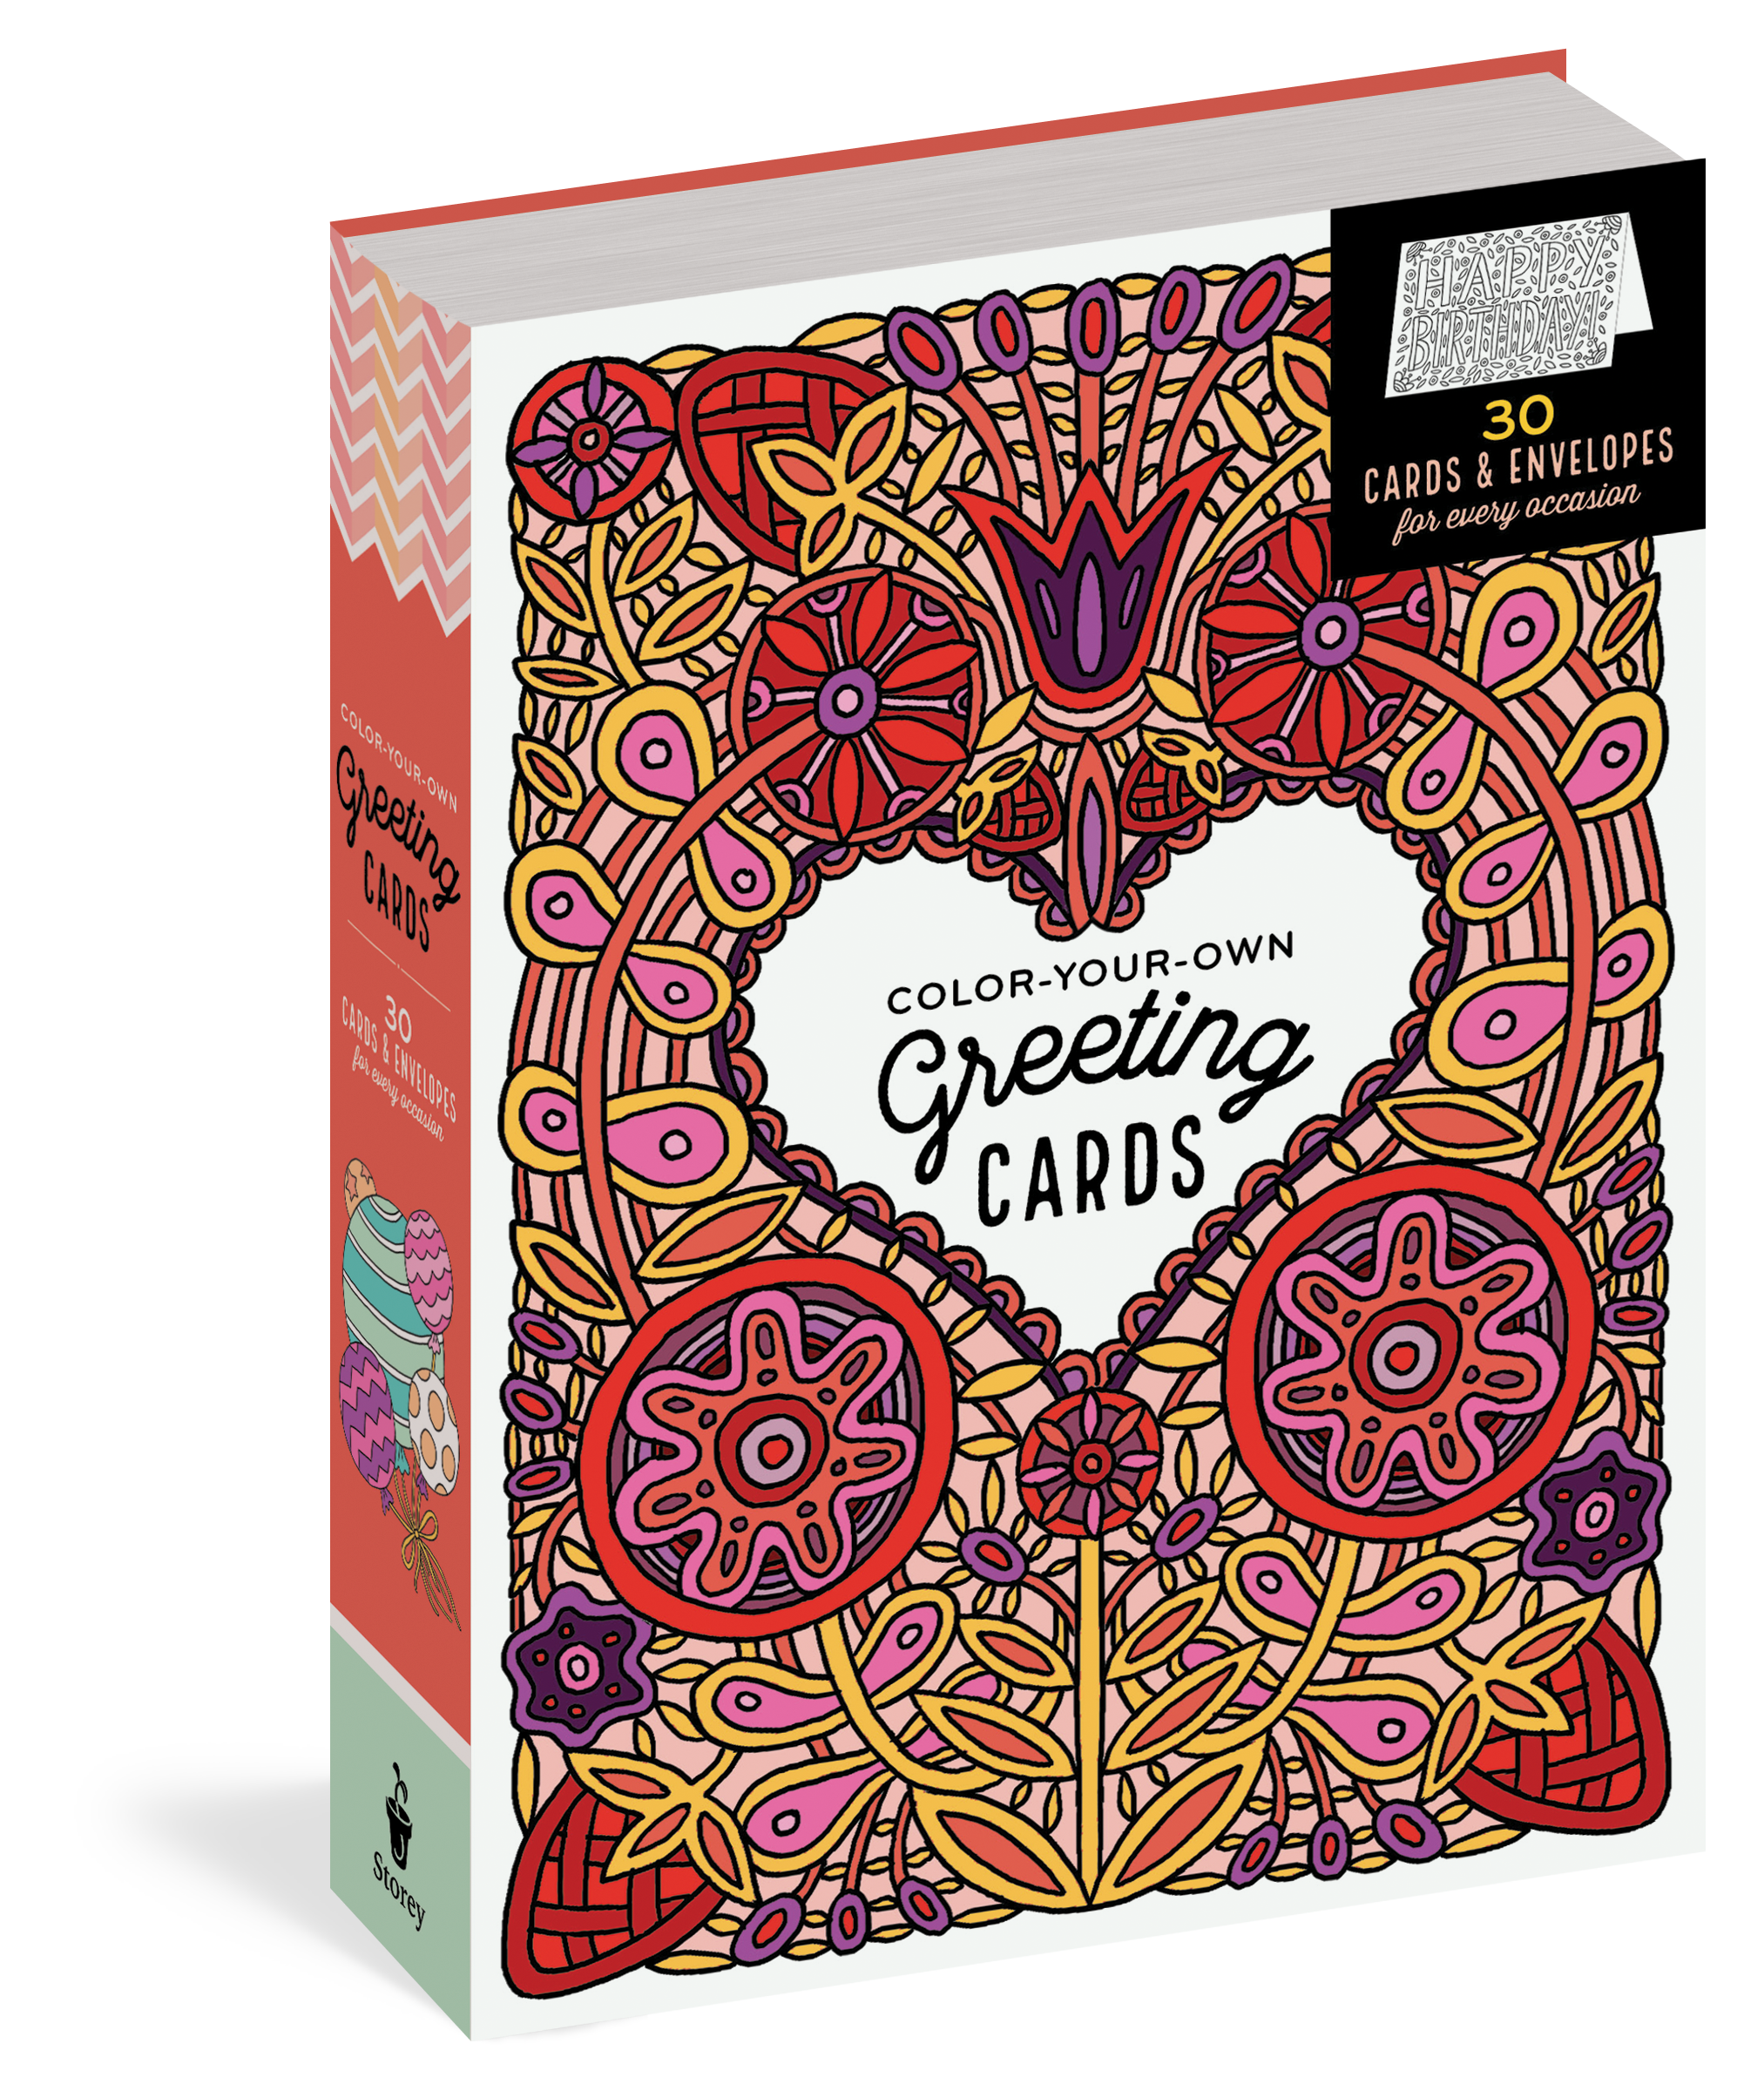 Color Your Own Greeting Cards Workman Publishing